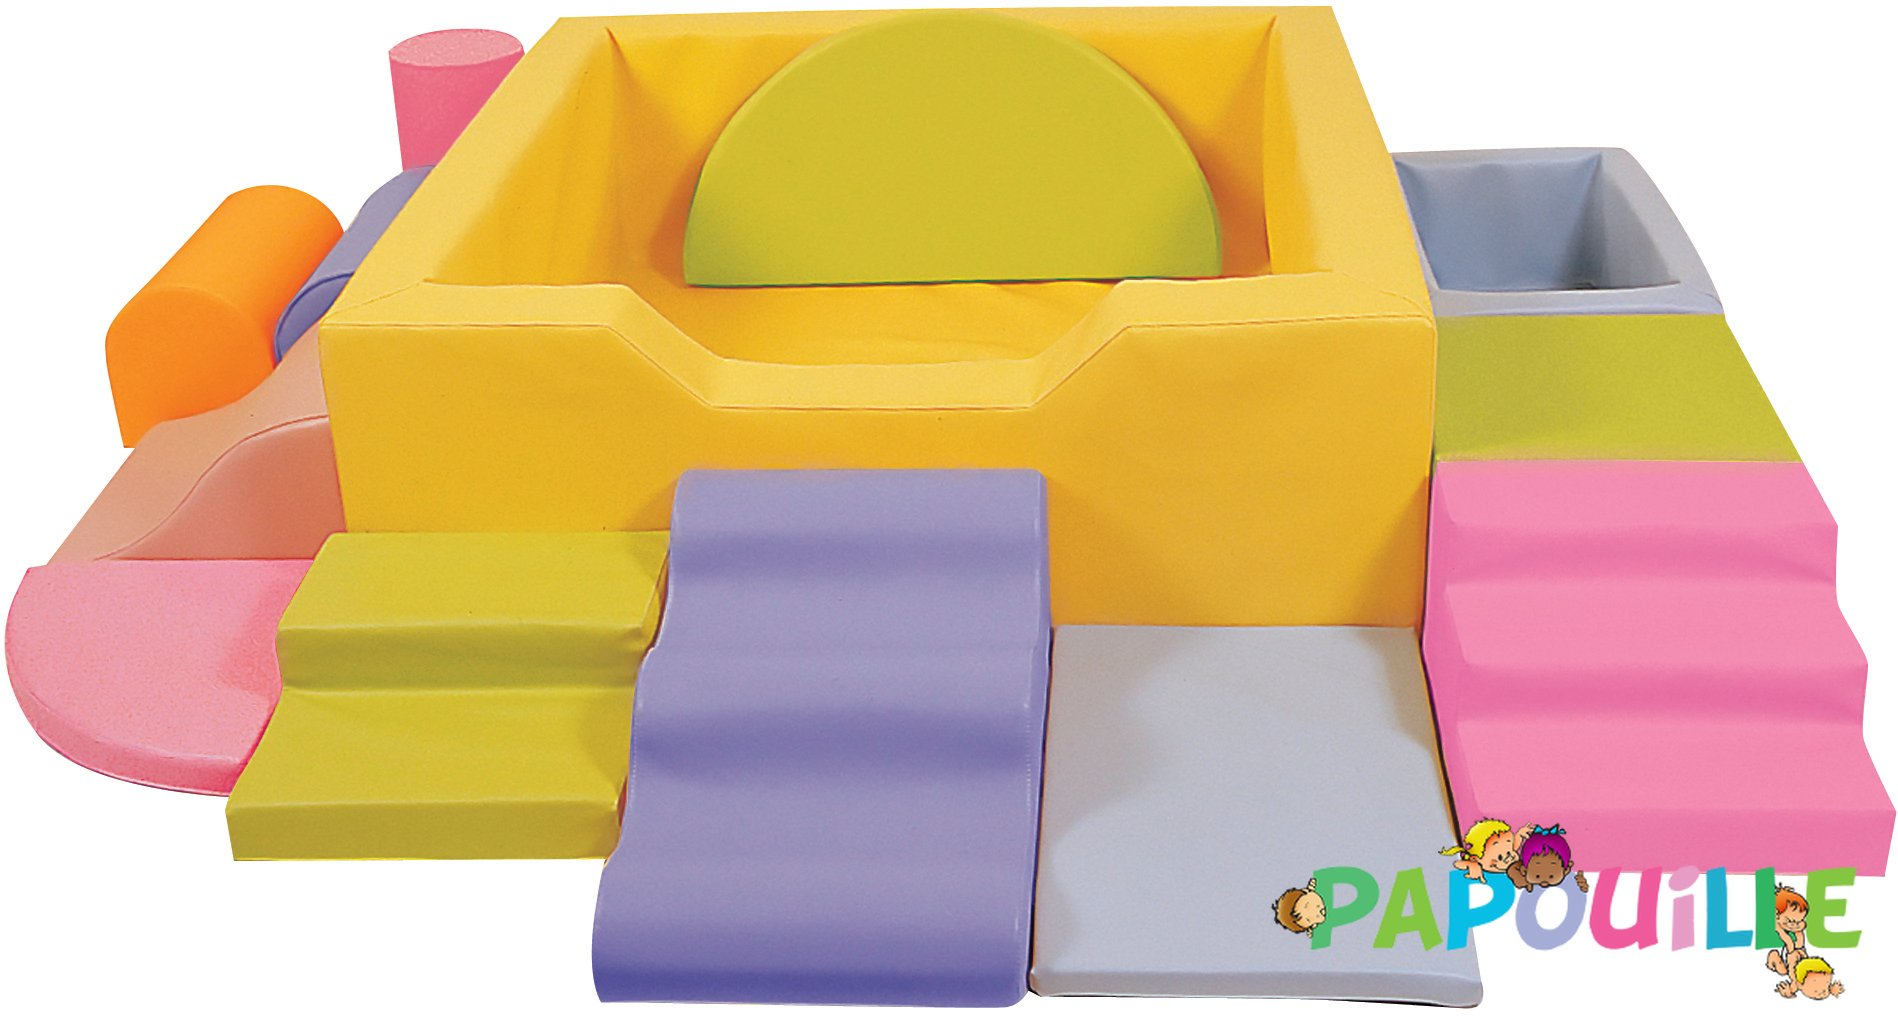 Kit Piscine à Balles Aventure avec Modules en Mousse PVC Jaune